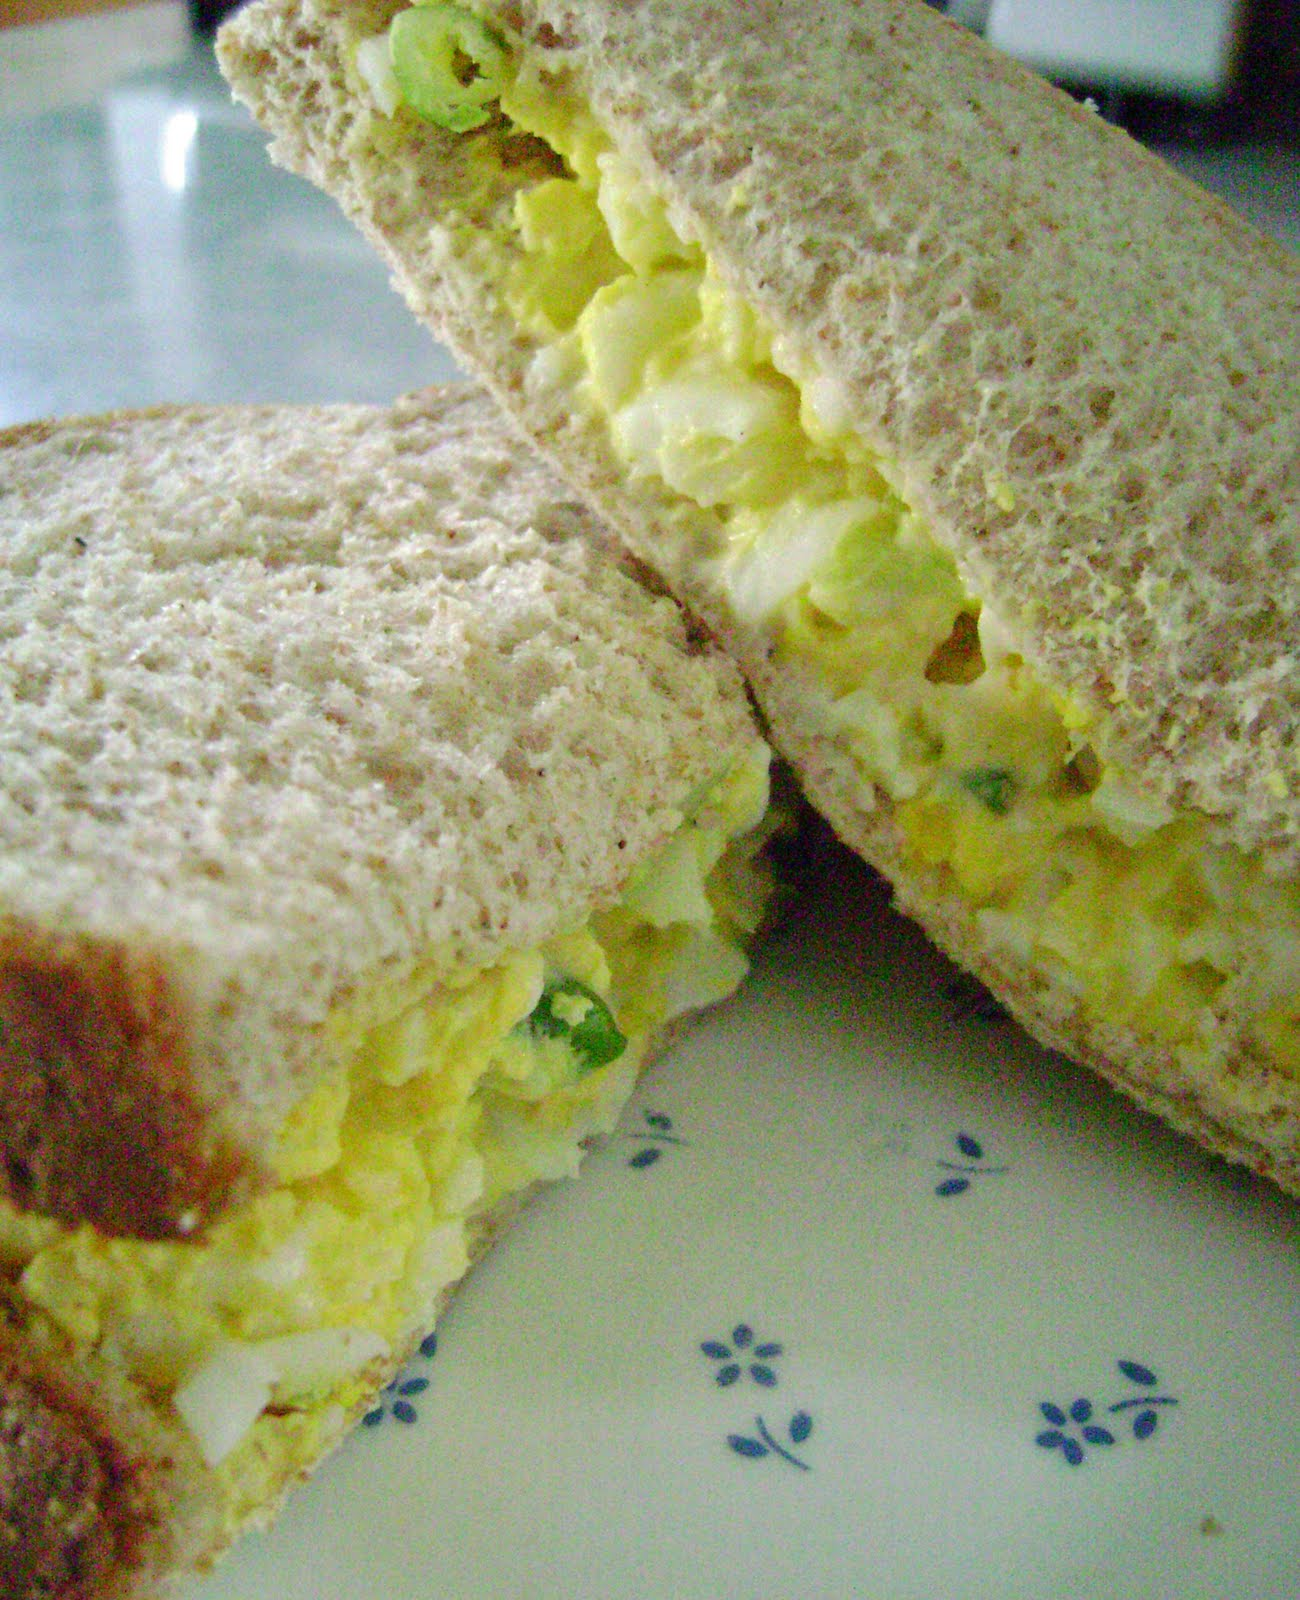 Jo and Sue: Egg Salad Sandwich